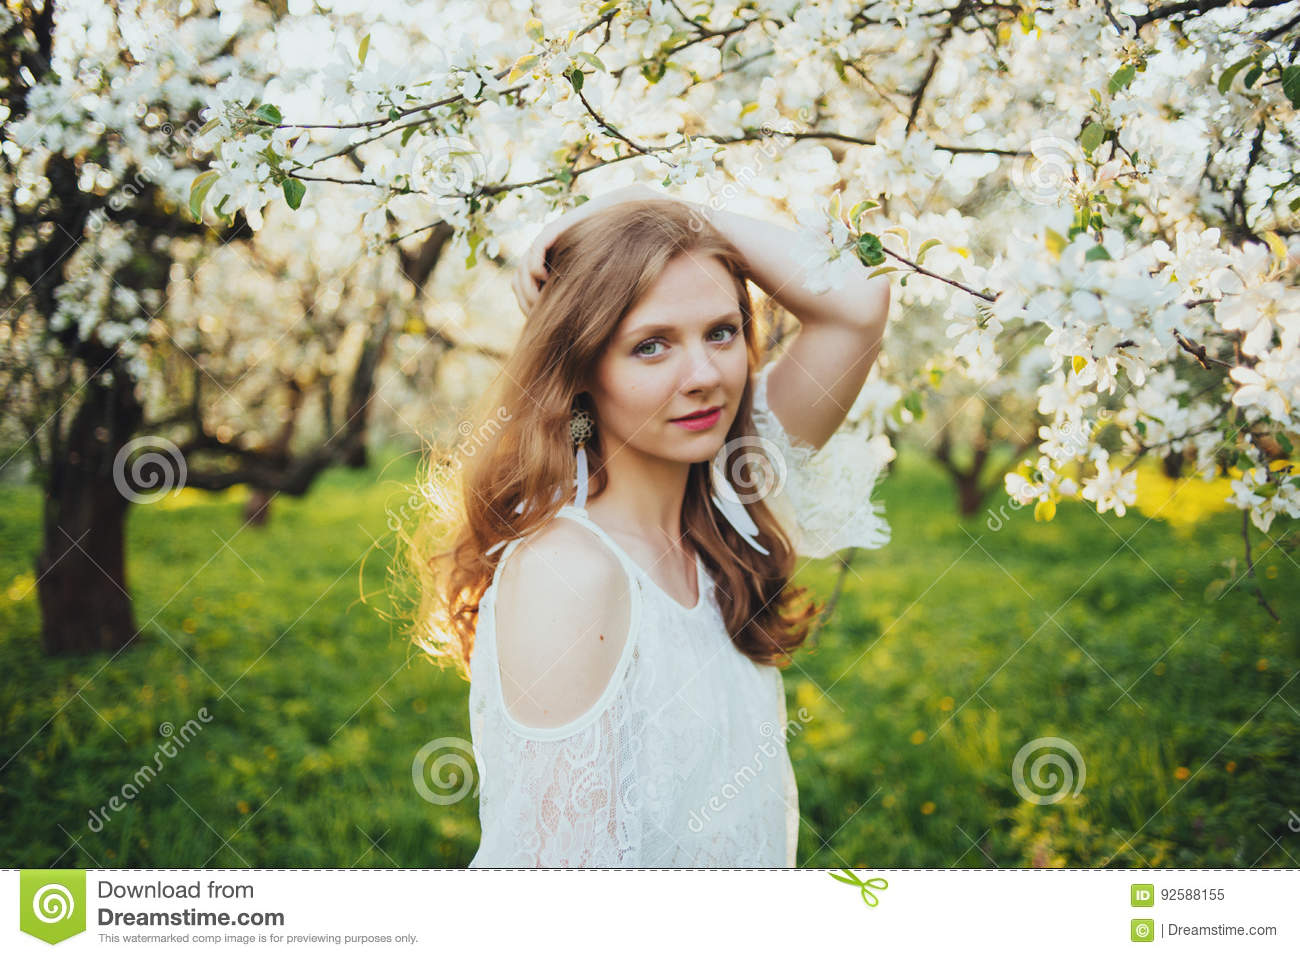 A girl in an apple orchard